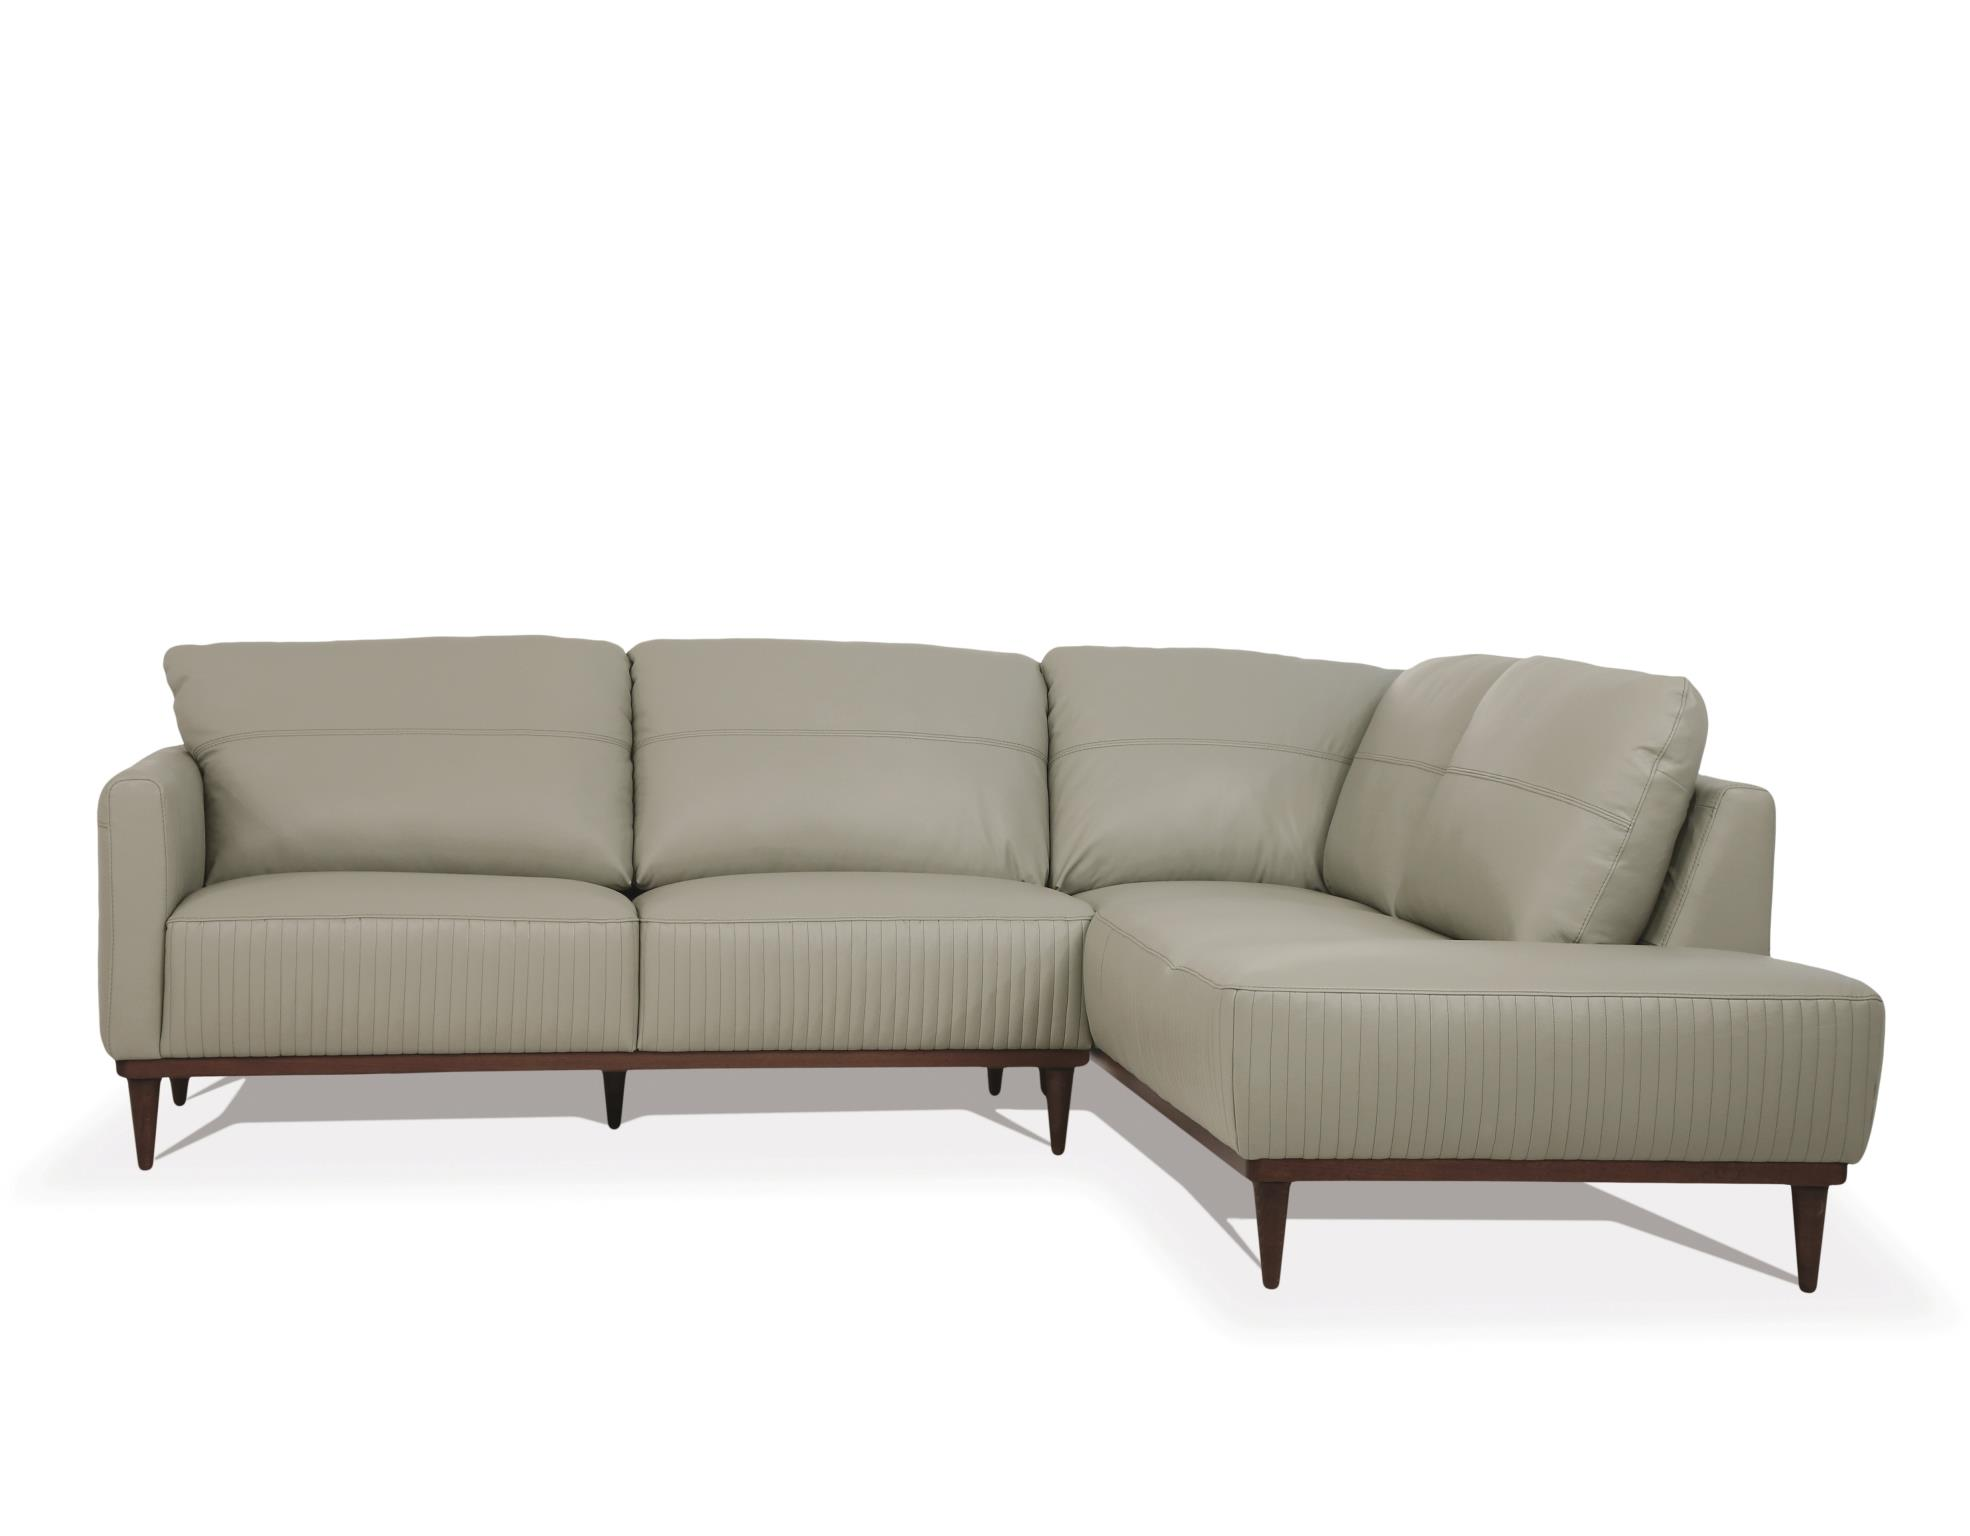 Airy Green Sectional Sofa w/ Right Facing Chaise